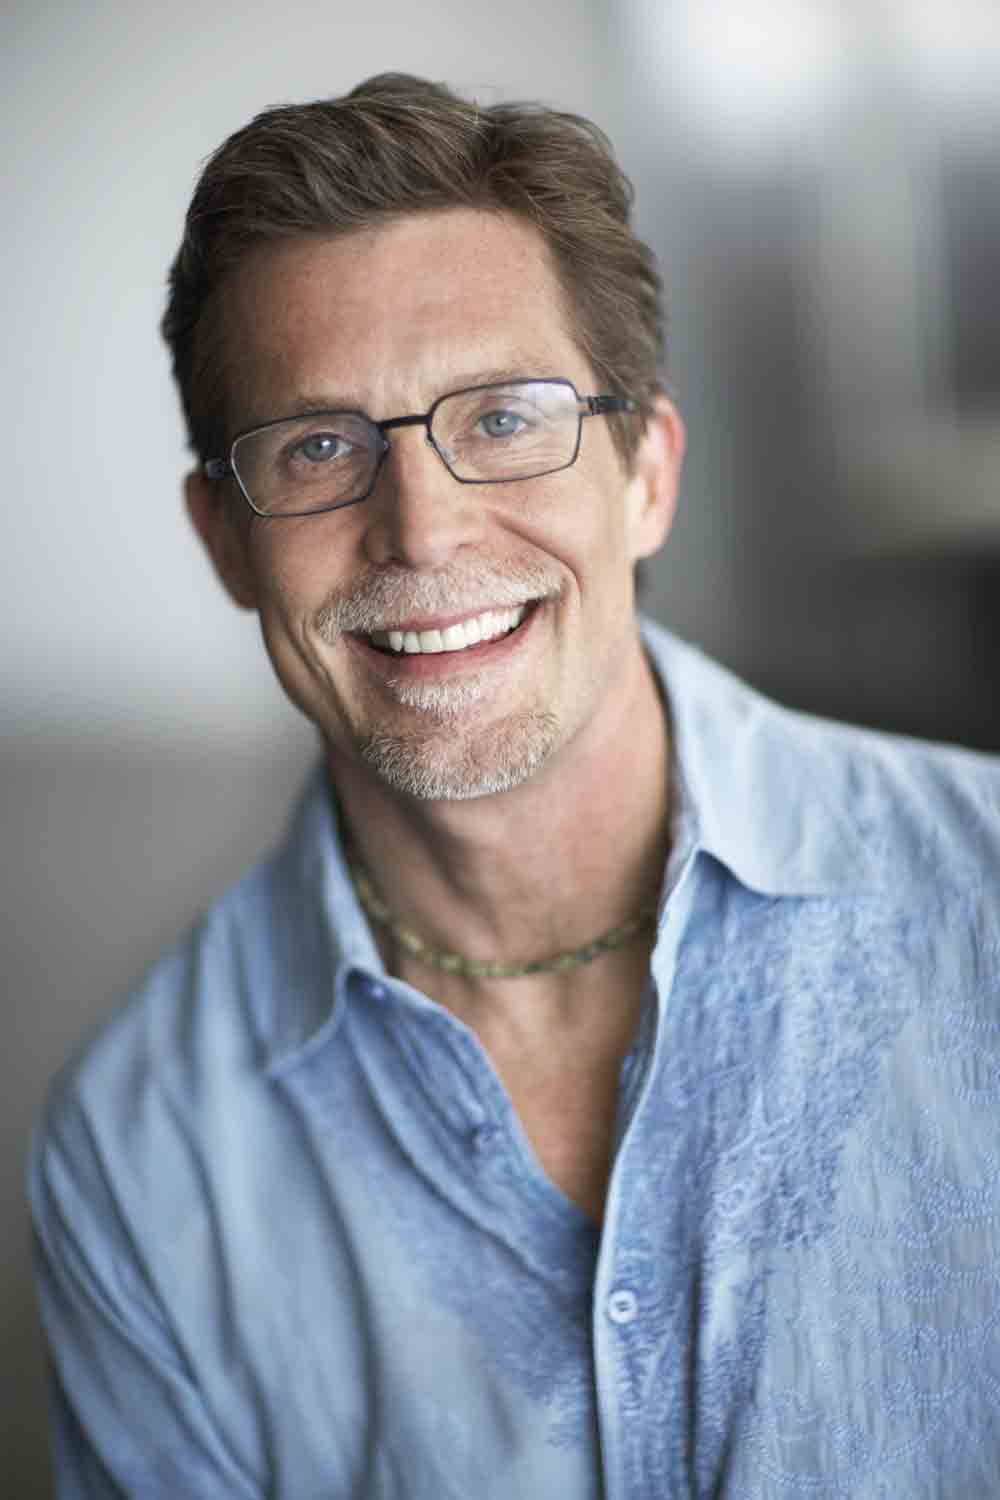 how tall is rick bayless